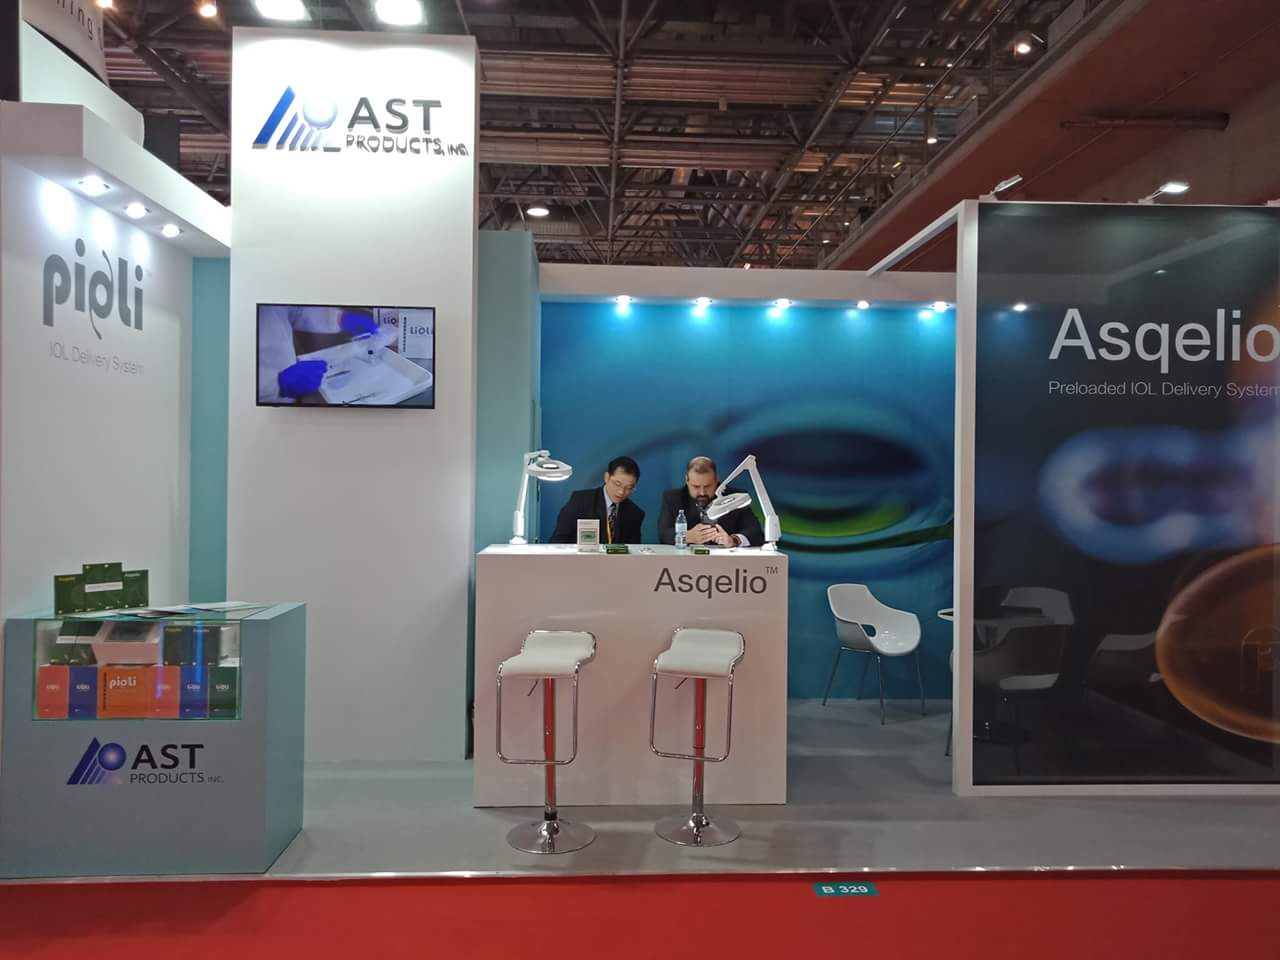 ESCRS18_Booth View 3.jpg